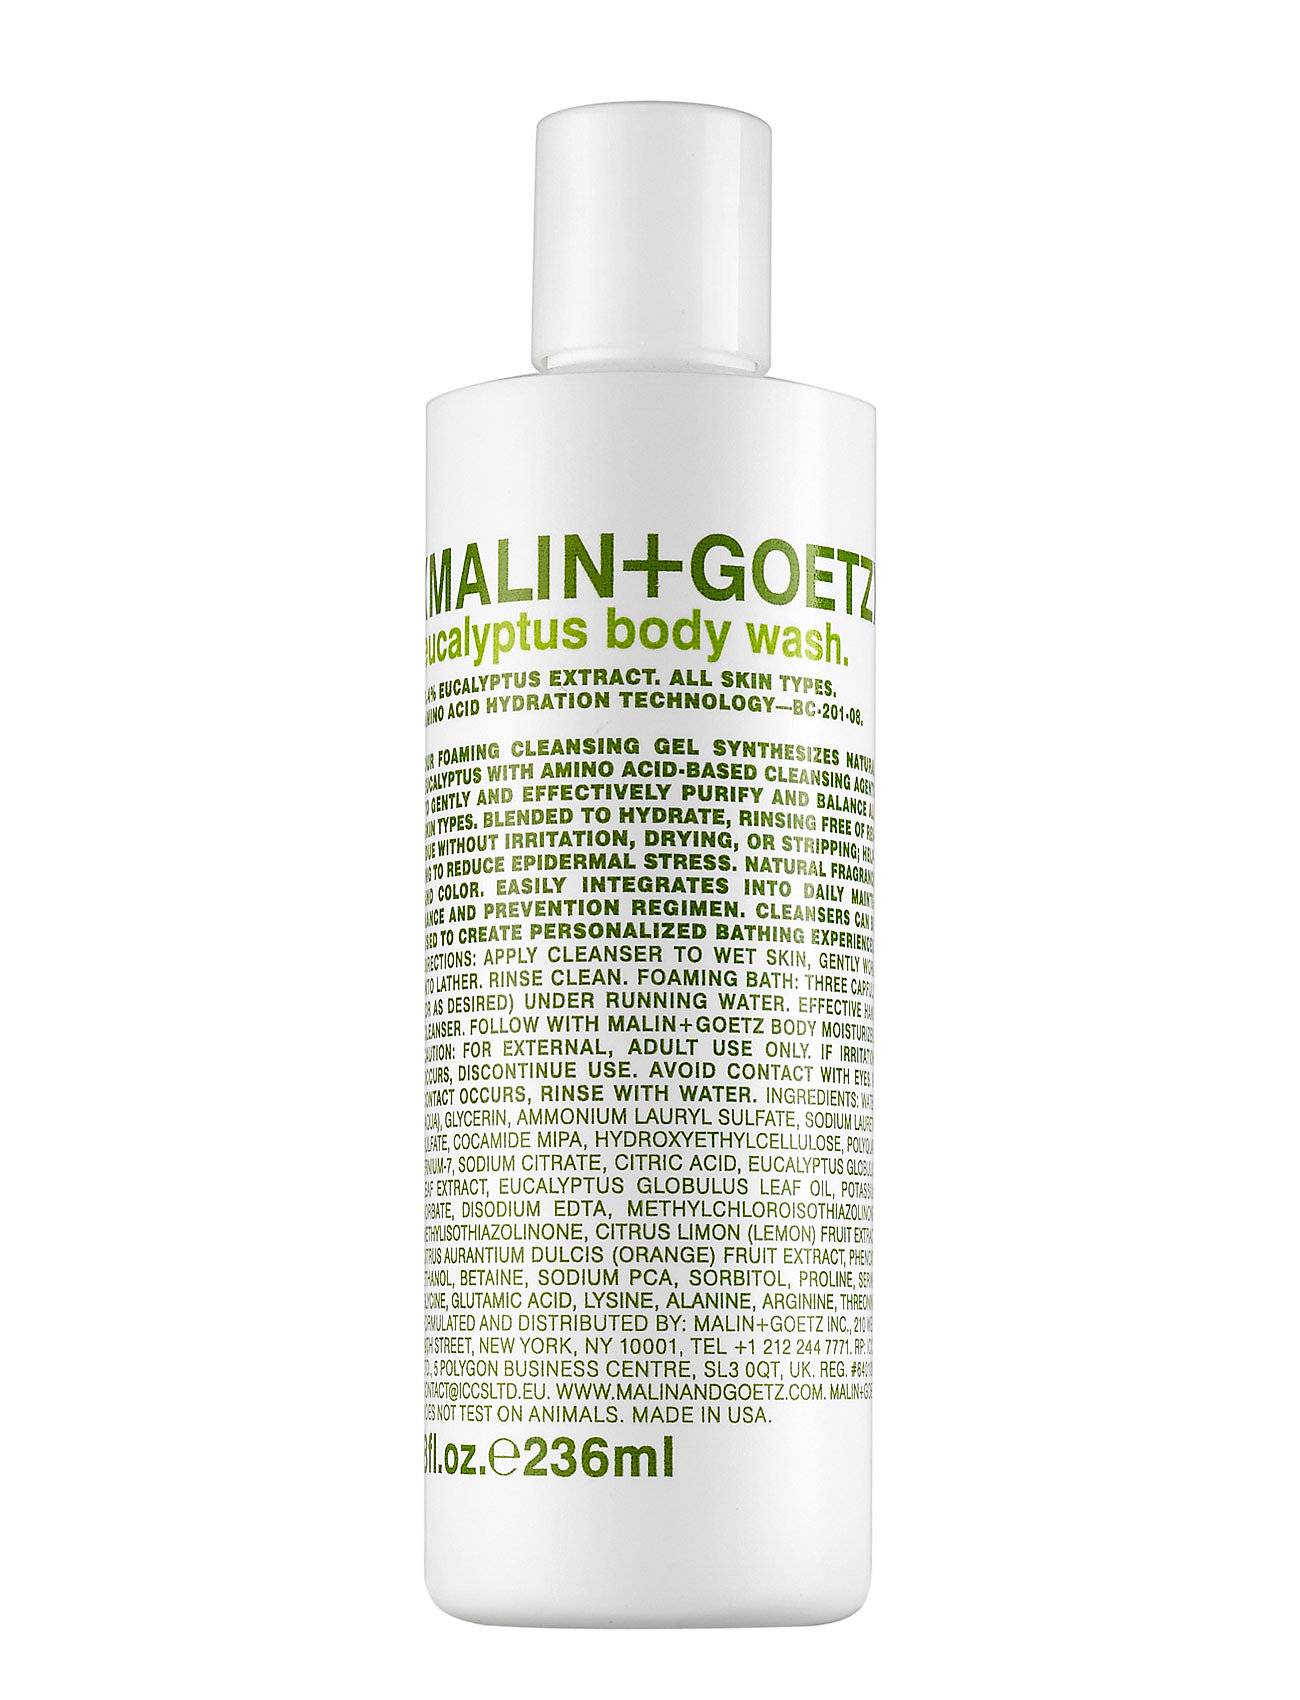 Malin+Goetz Eucalyptus Body Wash Beauty MEN Skin Care Body Shower Gel Nude Malin+Goetz